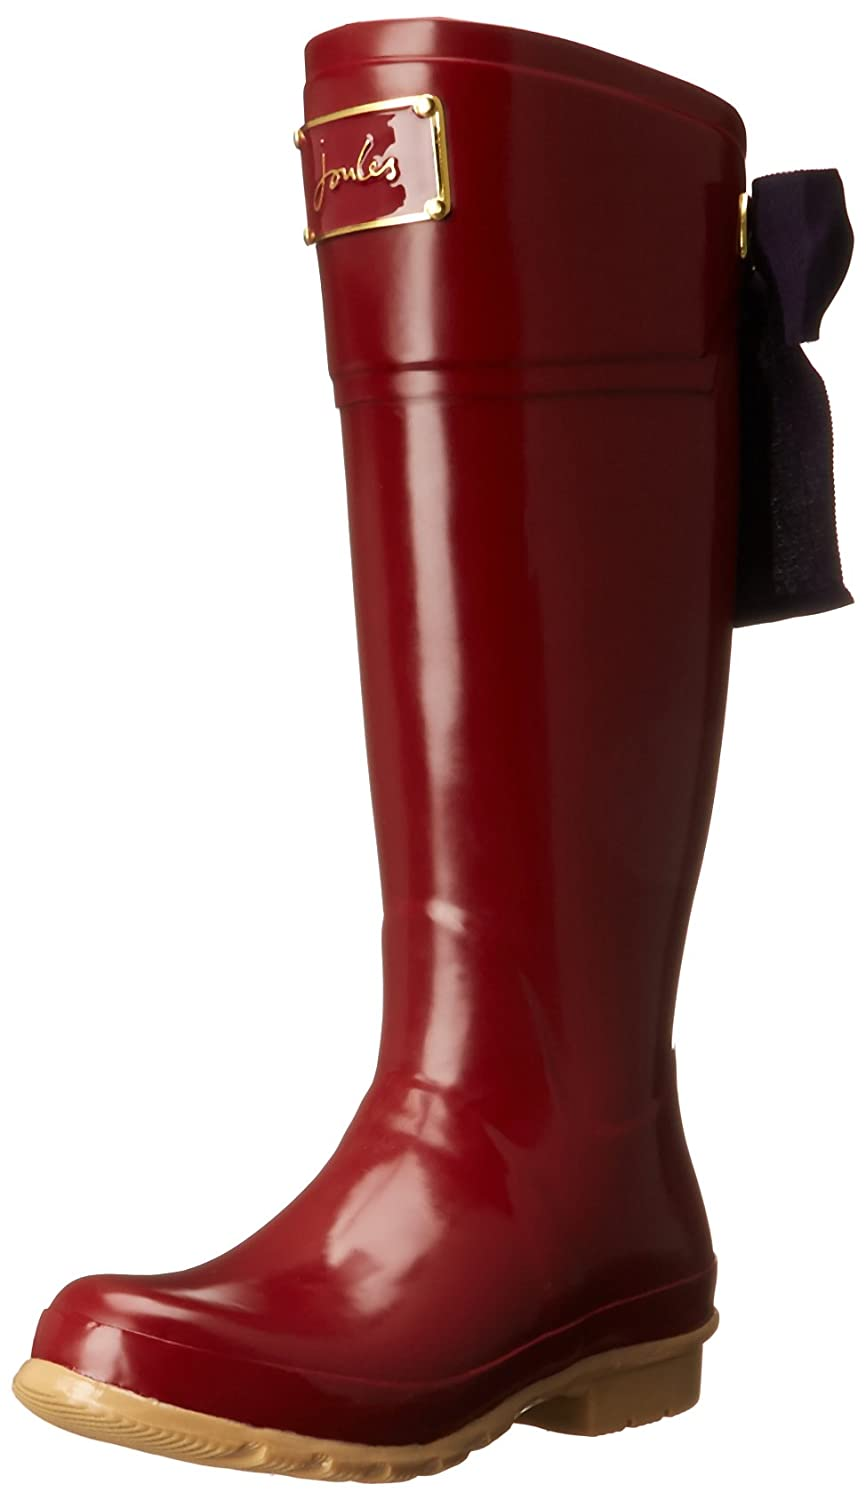 Joules Evedon Women's Riding Rain Boots Rubber Wellies B00QLU2NWG 7 M US|Red